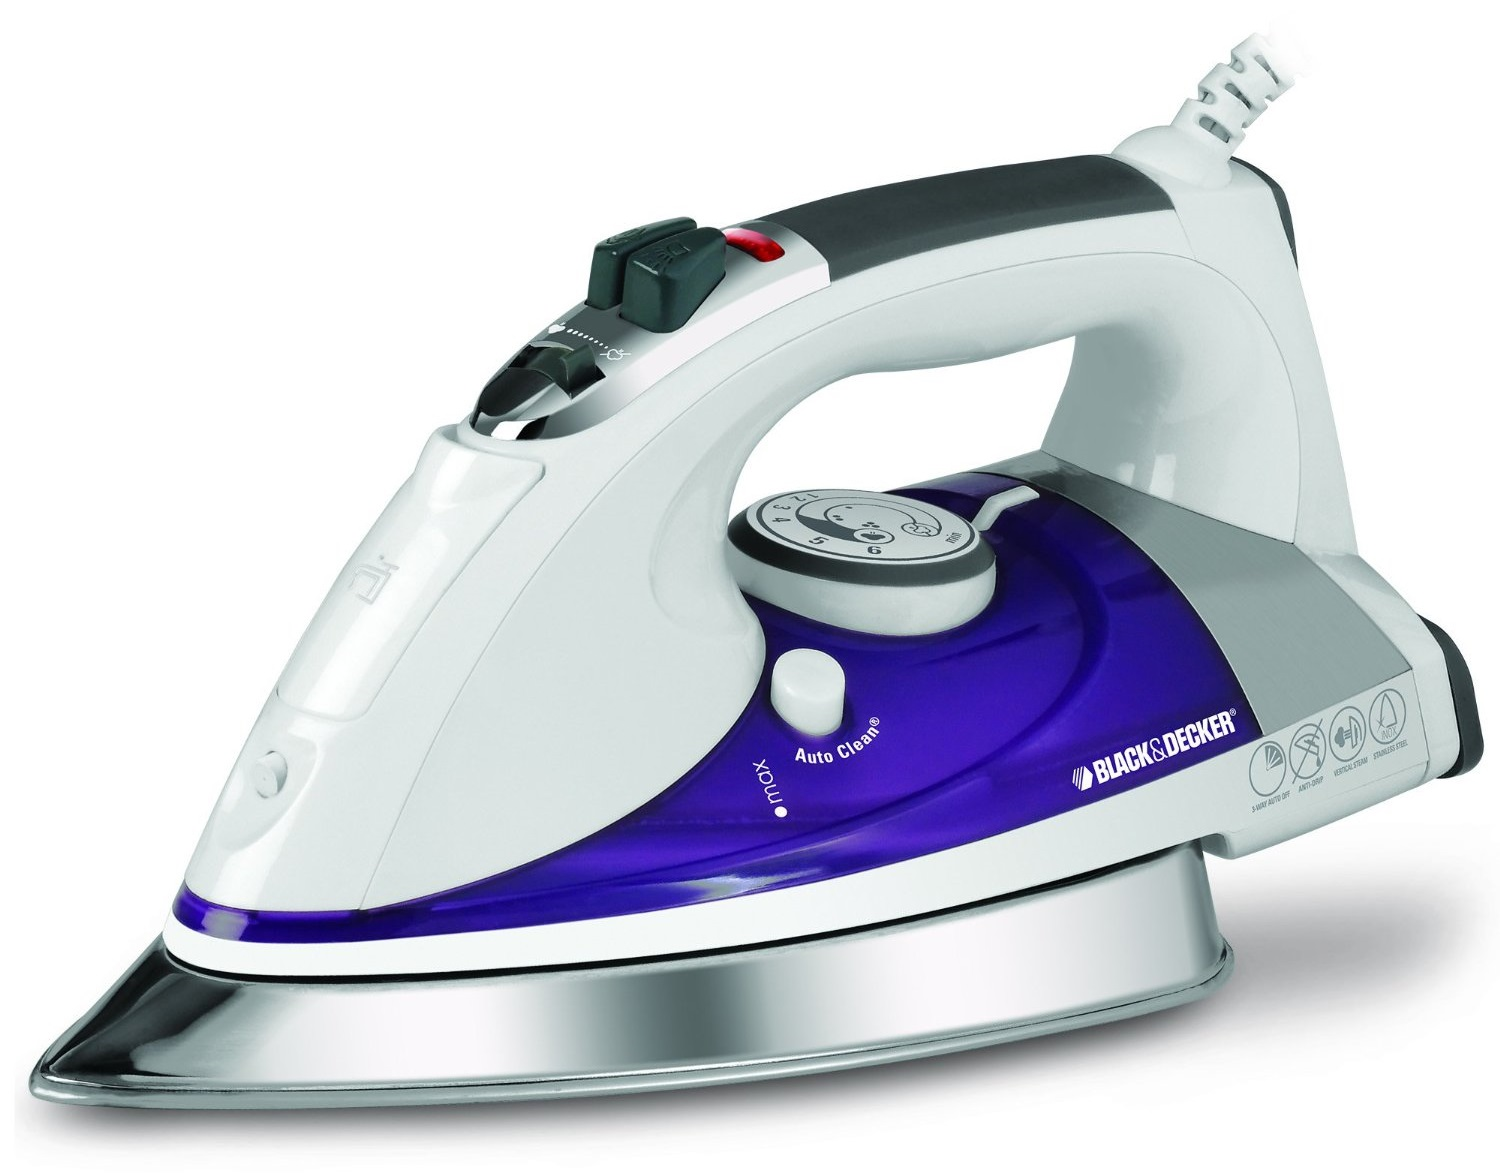 Steam Ironing System Steam Iron Review